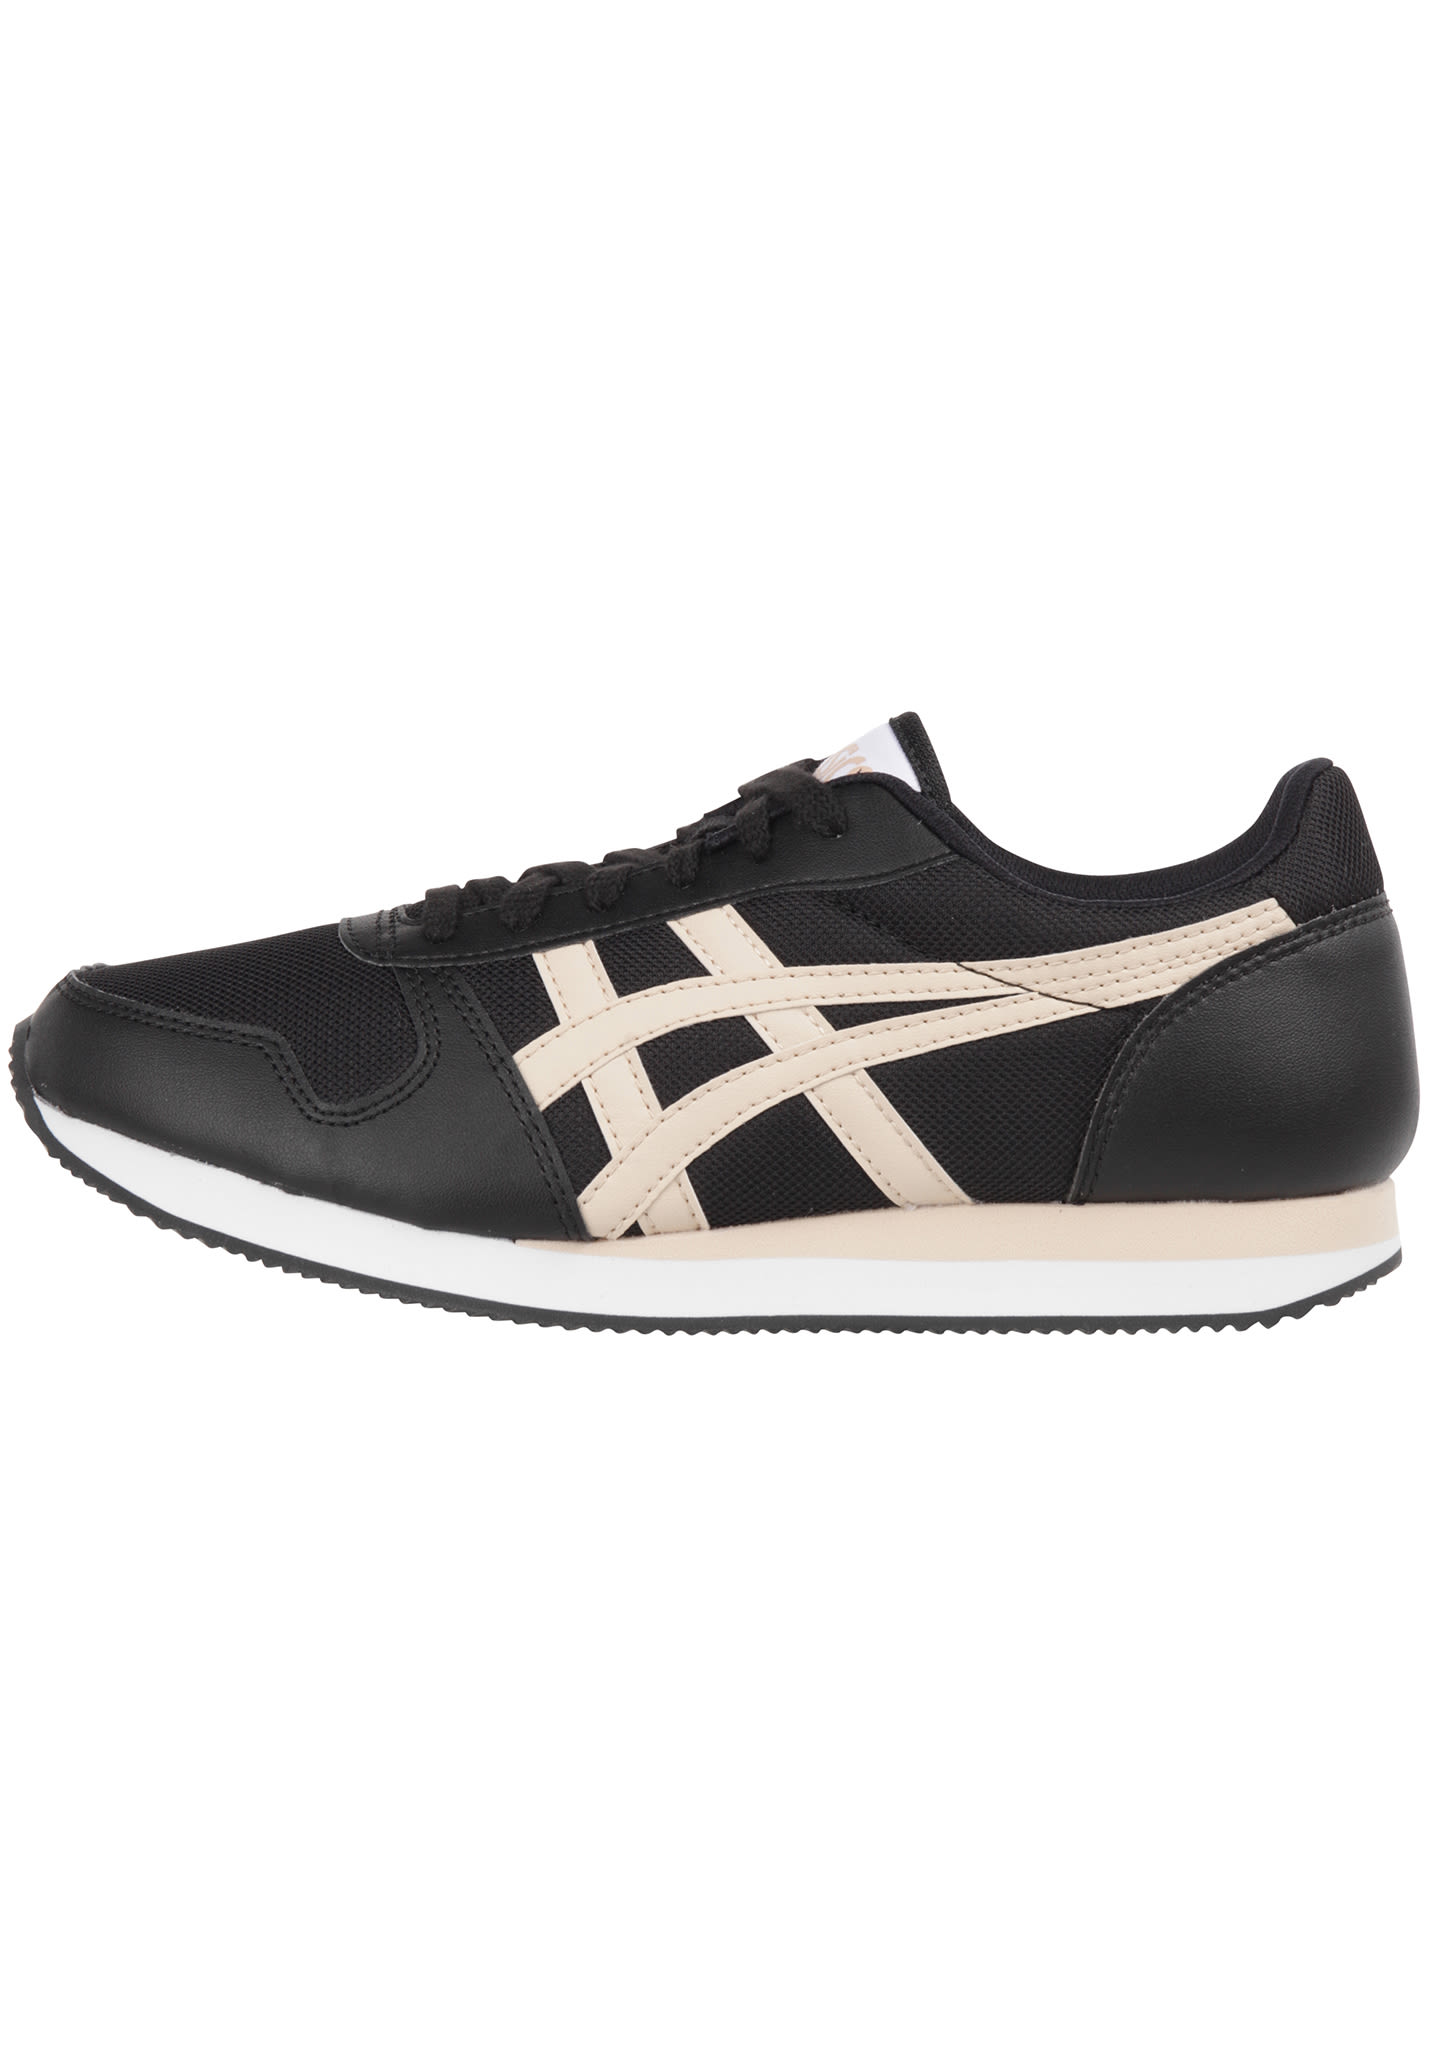 55aec6d6a86 Asics Tiger Curreo II - Sneakers voor Dames - Zwart - Planet Sports